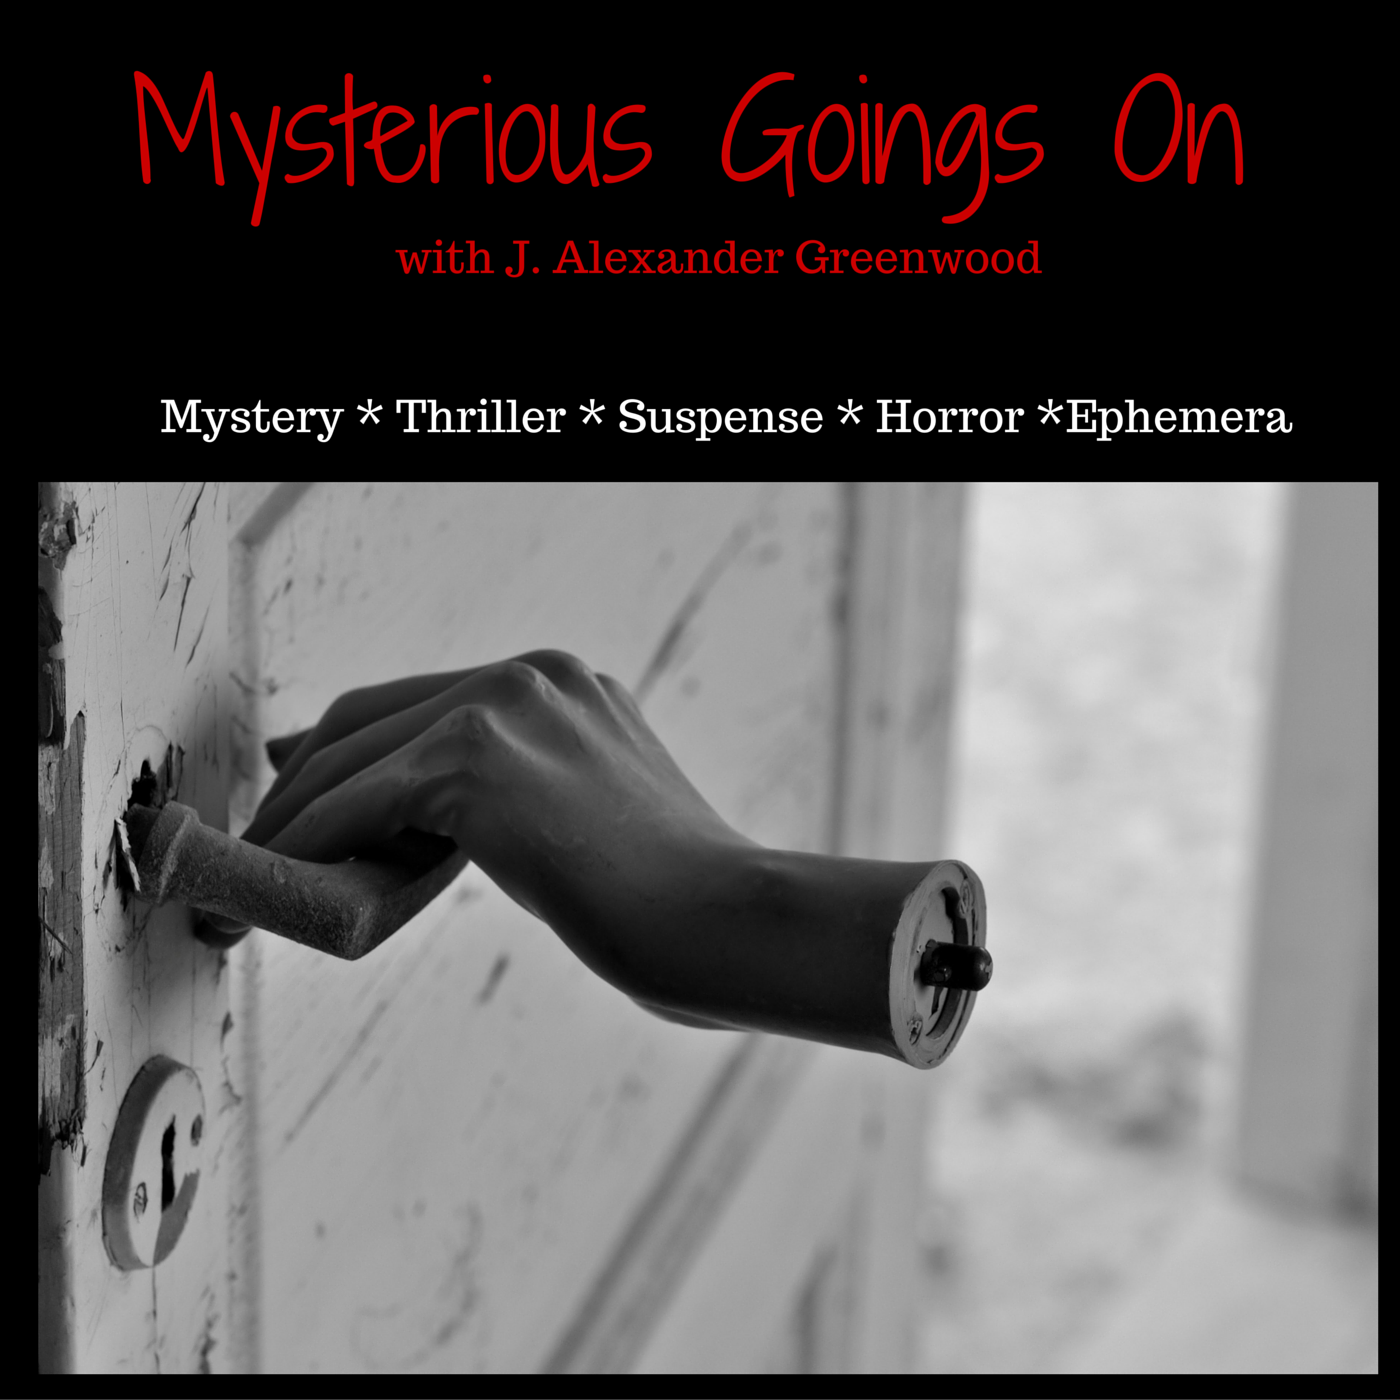 Clues: Alex's Blog — Mysterious Goings On